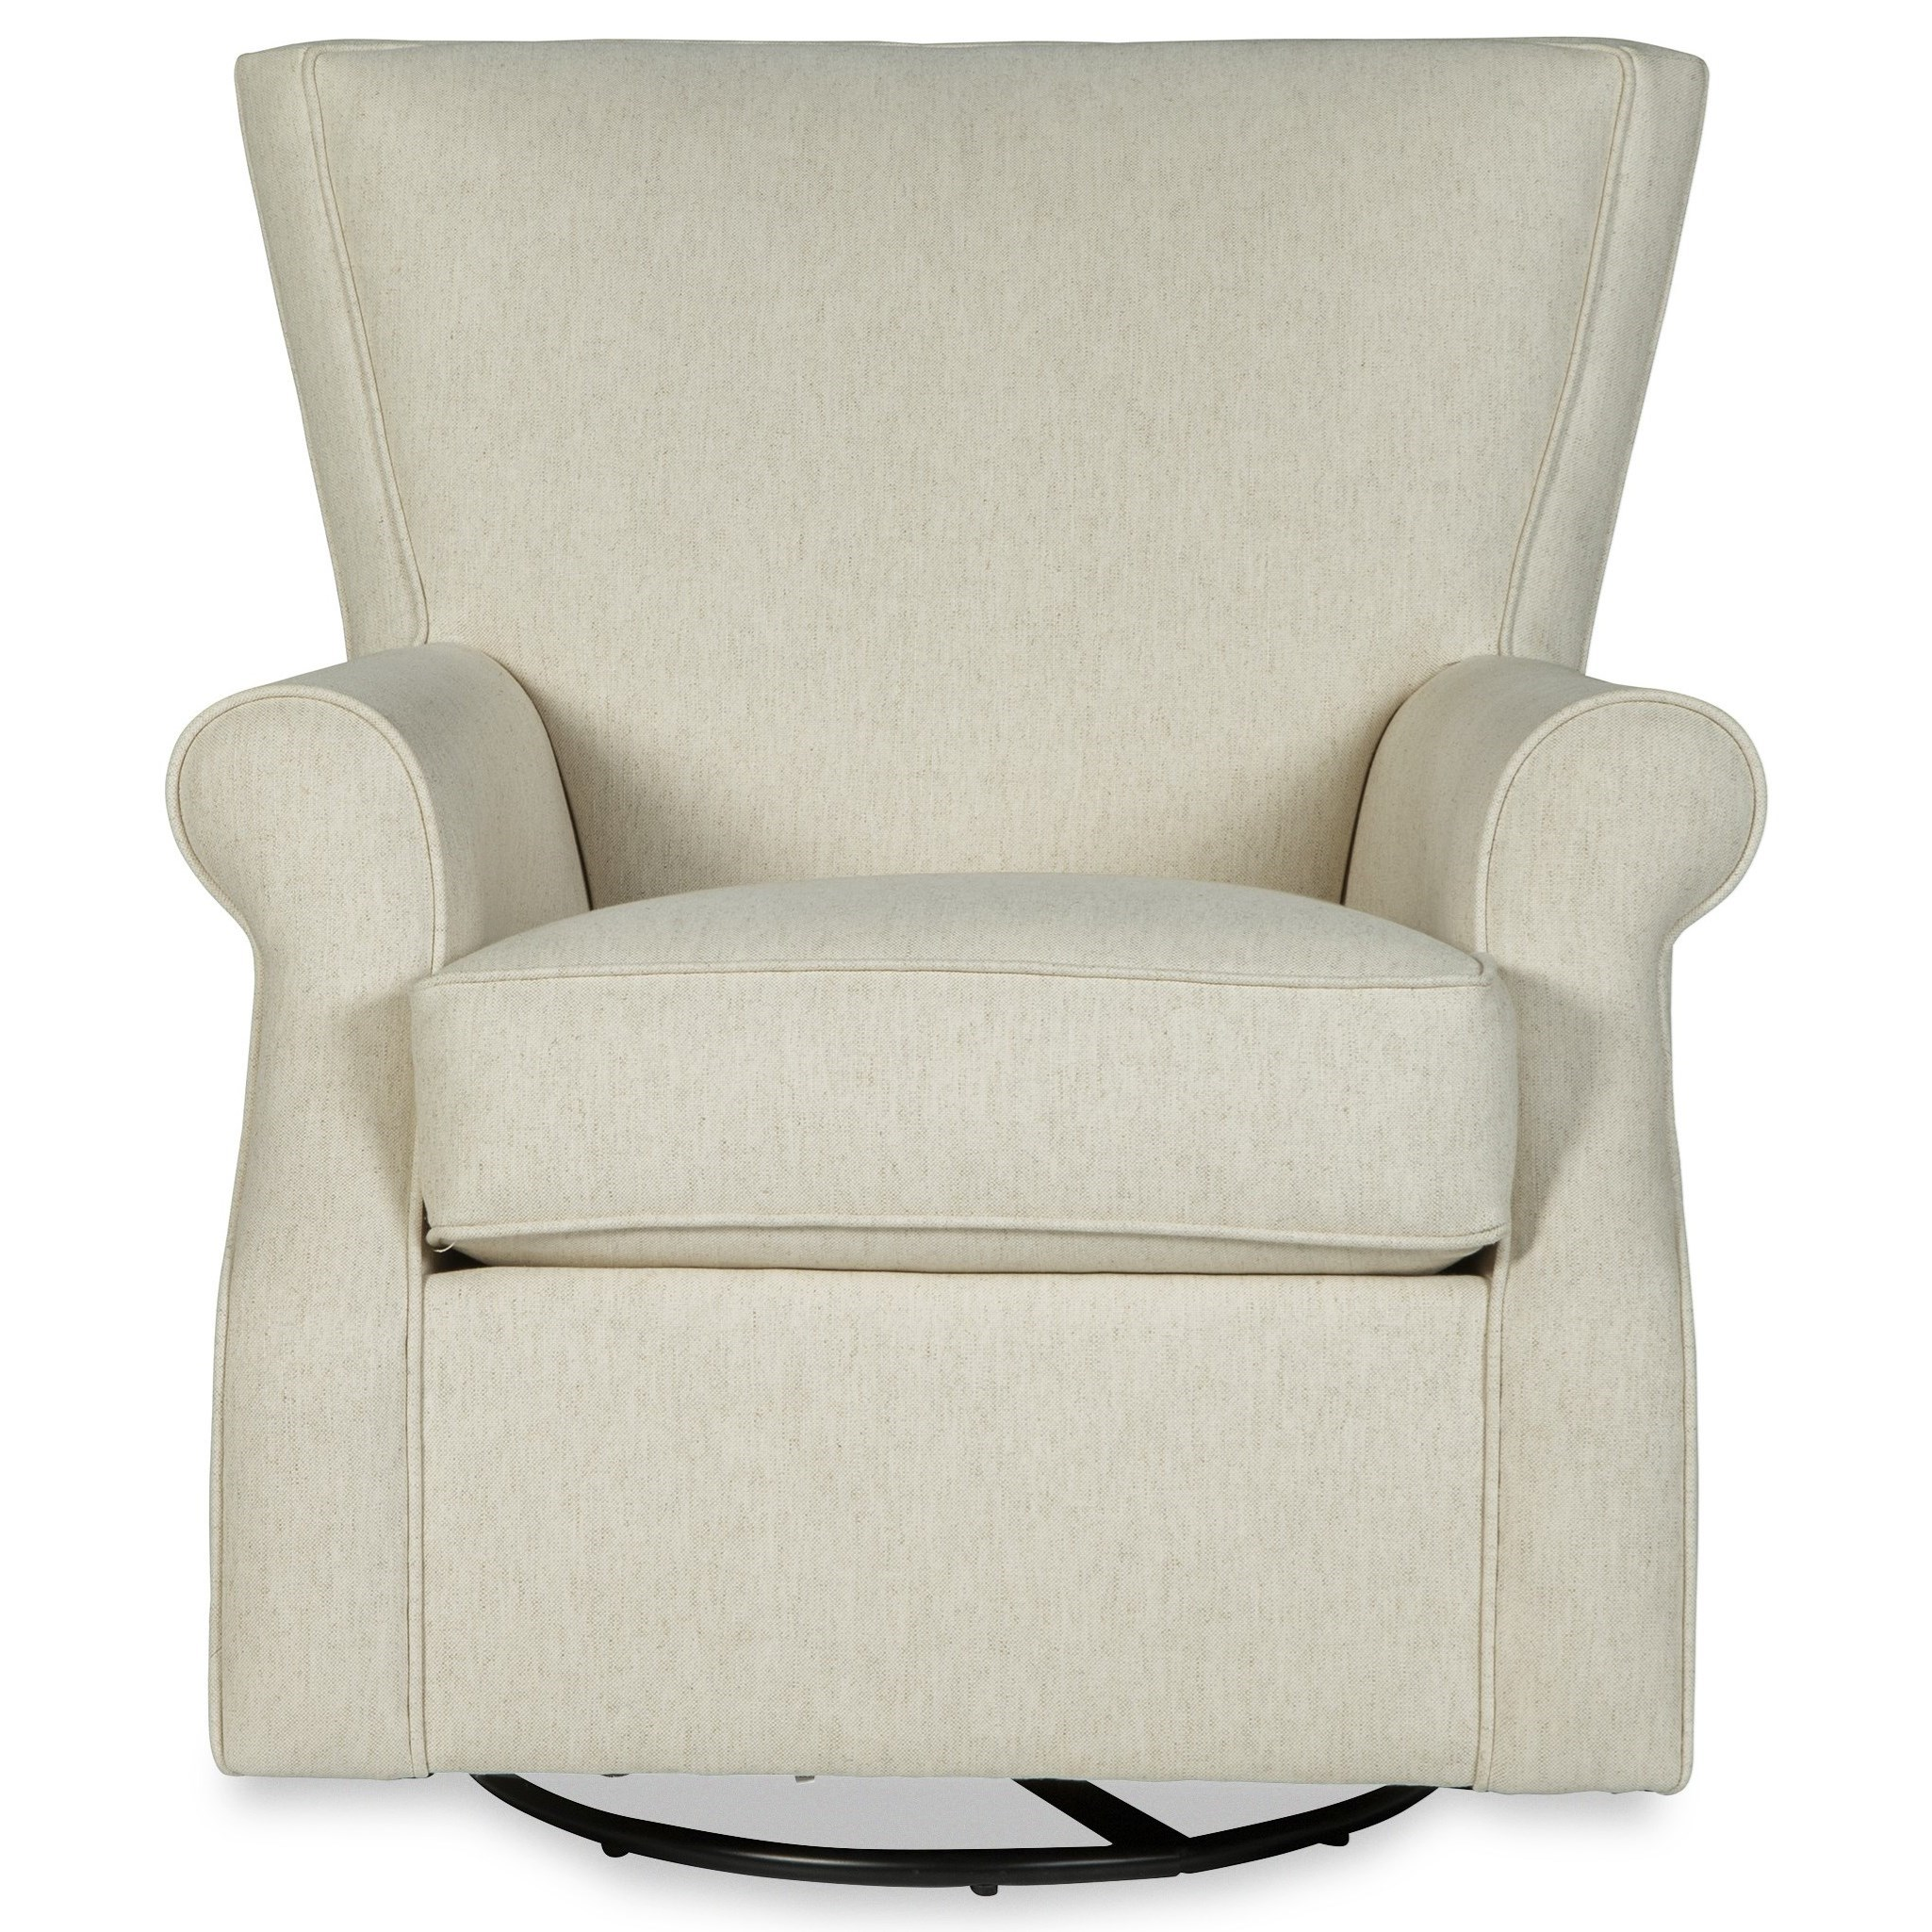 033810SG Swivel Glider by Craftmaster at Bullard Furniture